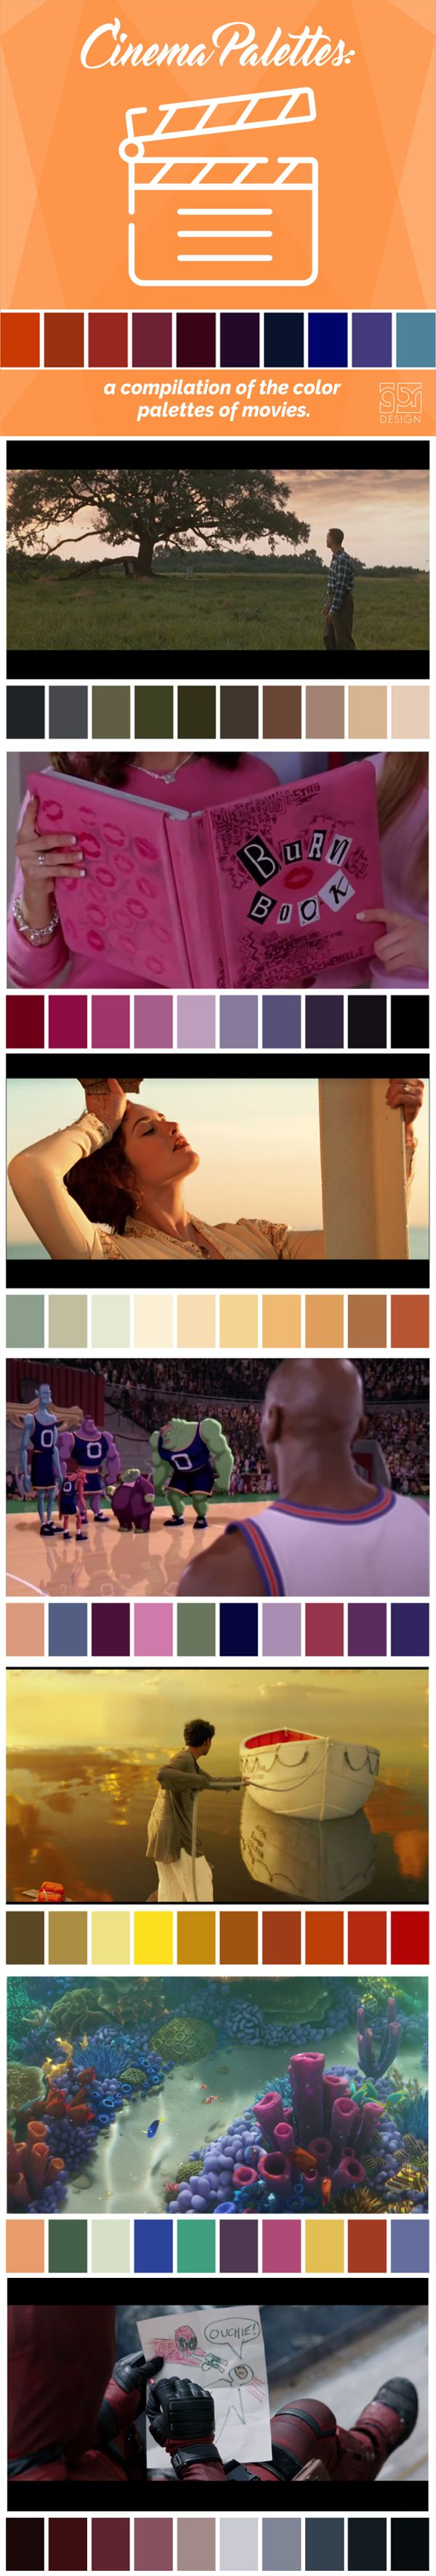 If you're a movie buff, you've probably fallen in love with the tonalities of a movie. And, like the soundtrack or lighting, the predominant colors of a film are also cared for in detail. This is the project initiated by the student Gaby Smith on Twitter called Cinema Palettes. Enjoy some samples of her work. - https://www.facebook.com/DESIGNGBR/ - #Movies #Colors #Palette #Cinema #Pantone #RGB #CMYK #Design #Titanic #ForrestGump #MeanGirls #LifeOfPi #Deadpool #FindingNemo #SocialMedia